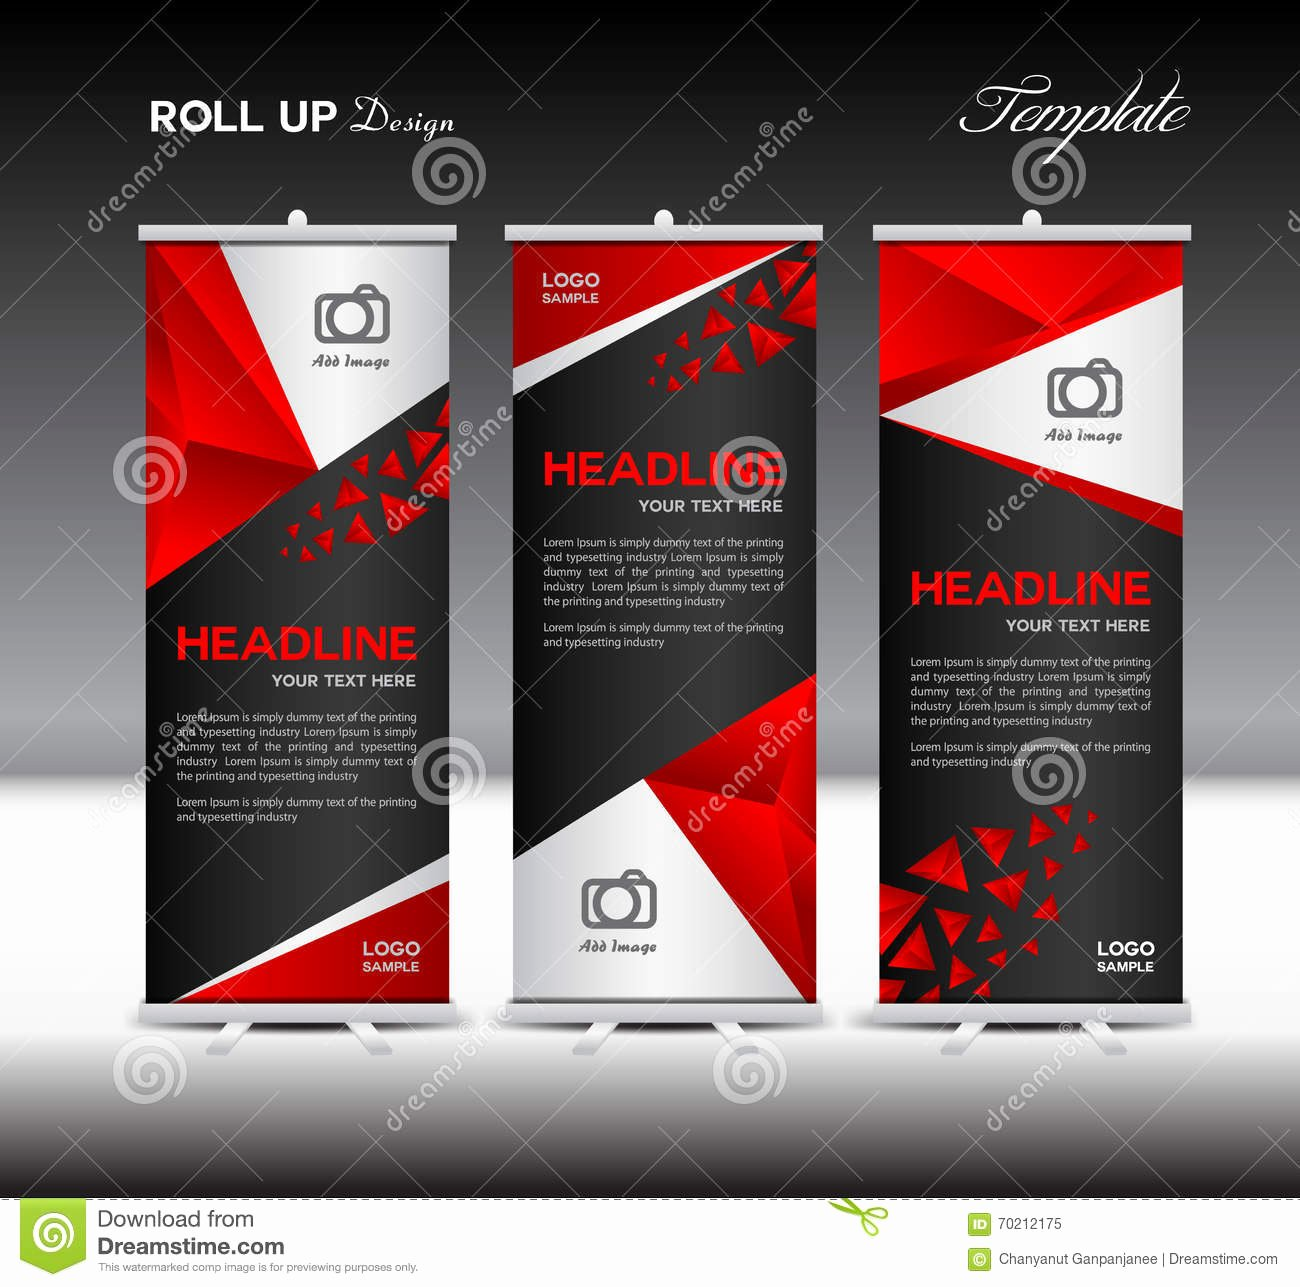 Roll Up Banners Template Luxury Red Roll Up Banner Template Vector Illustration Banner